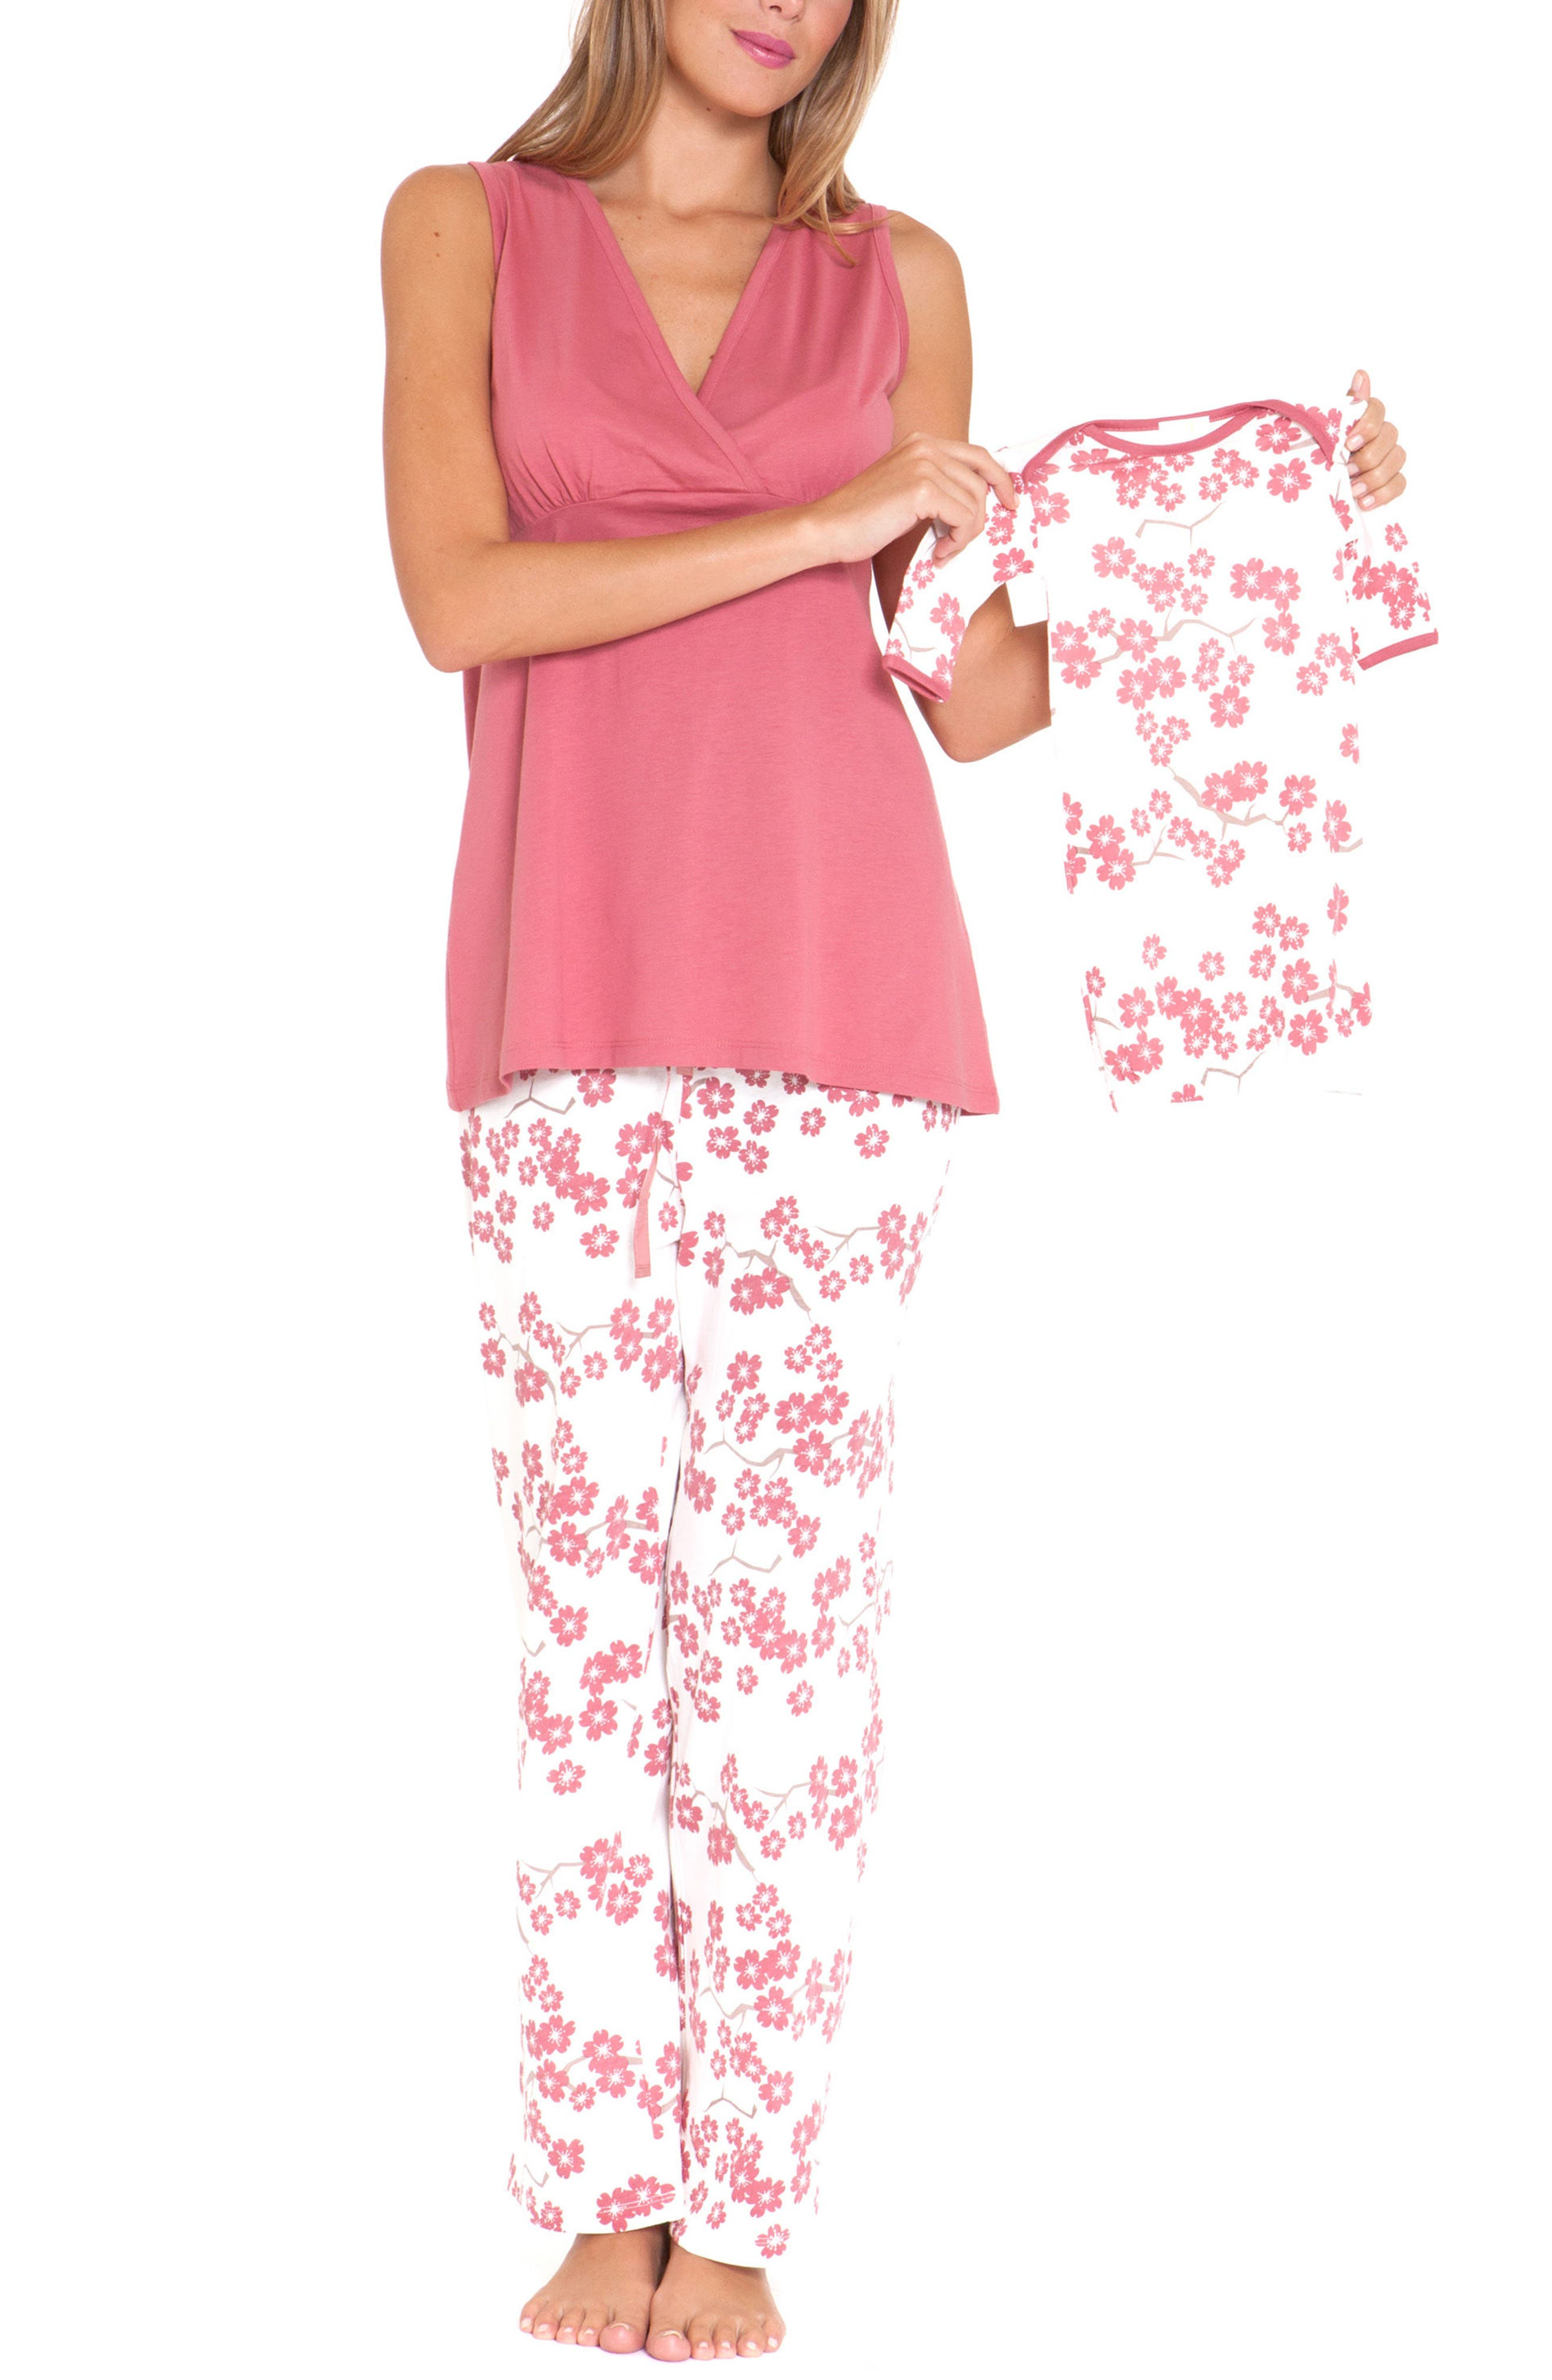 Olian 4-Piece Maternity Sleepwear Gift Set